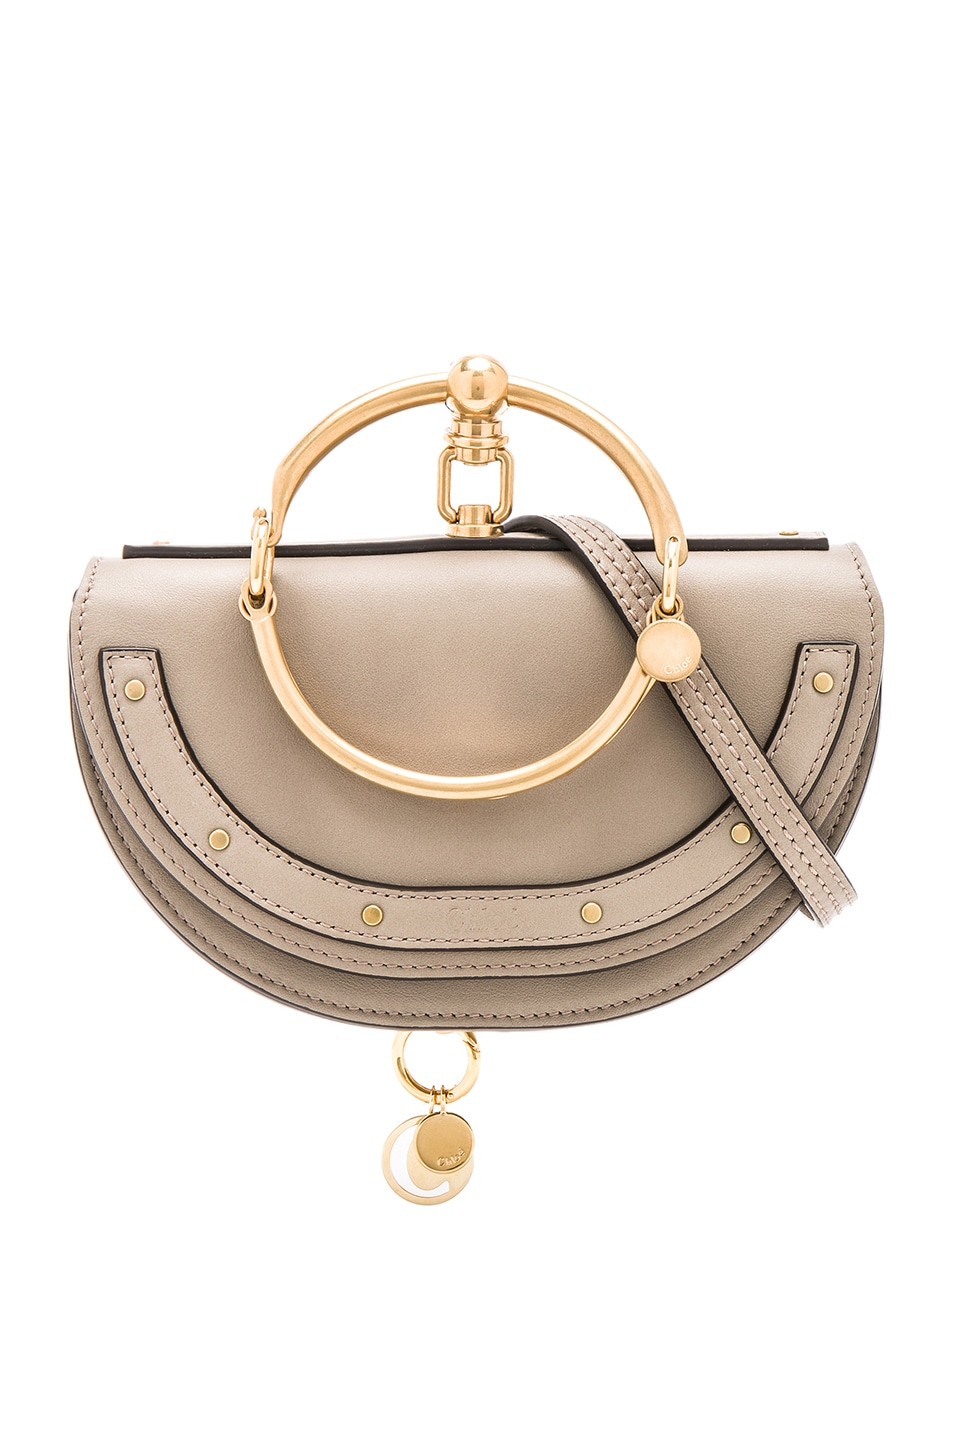 Image 1 of Chloe Small Nile Leather Minaudiere in Motty Grey